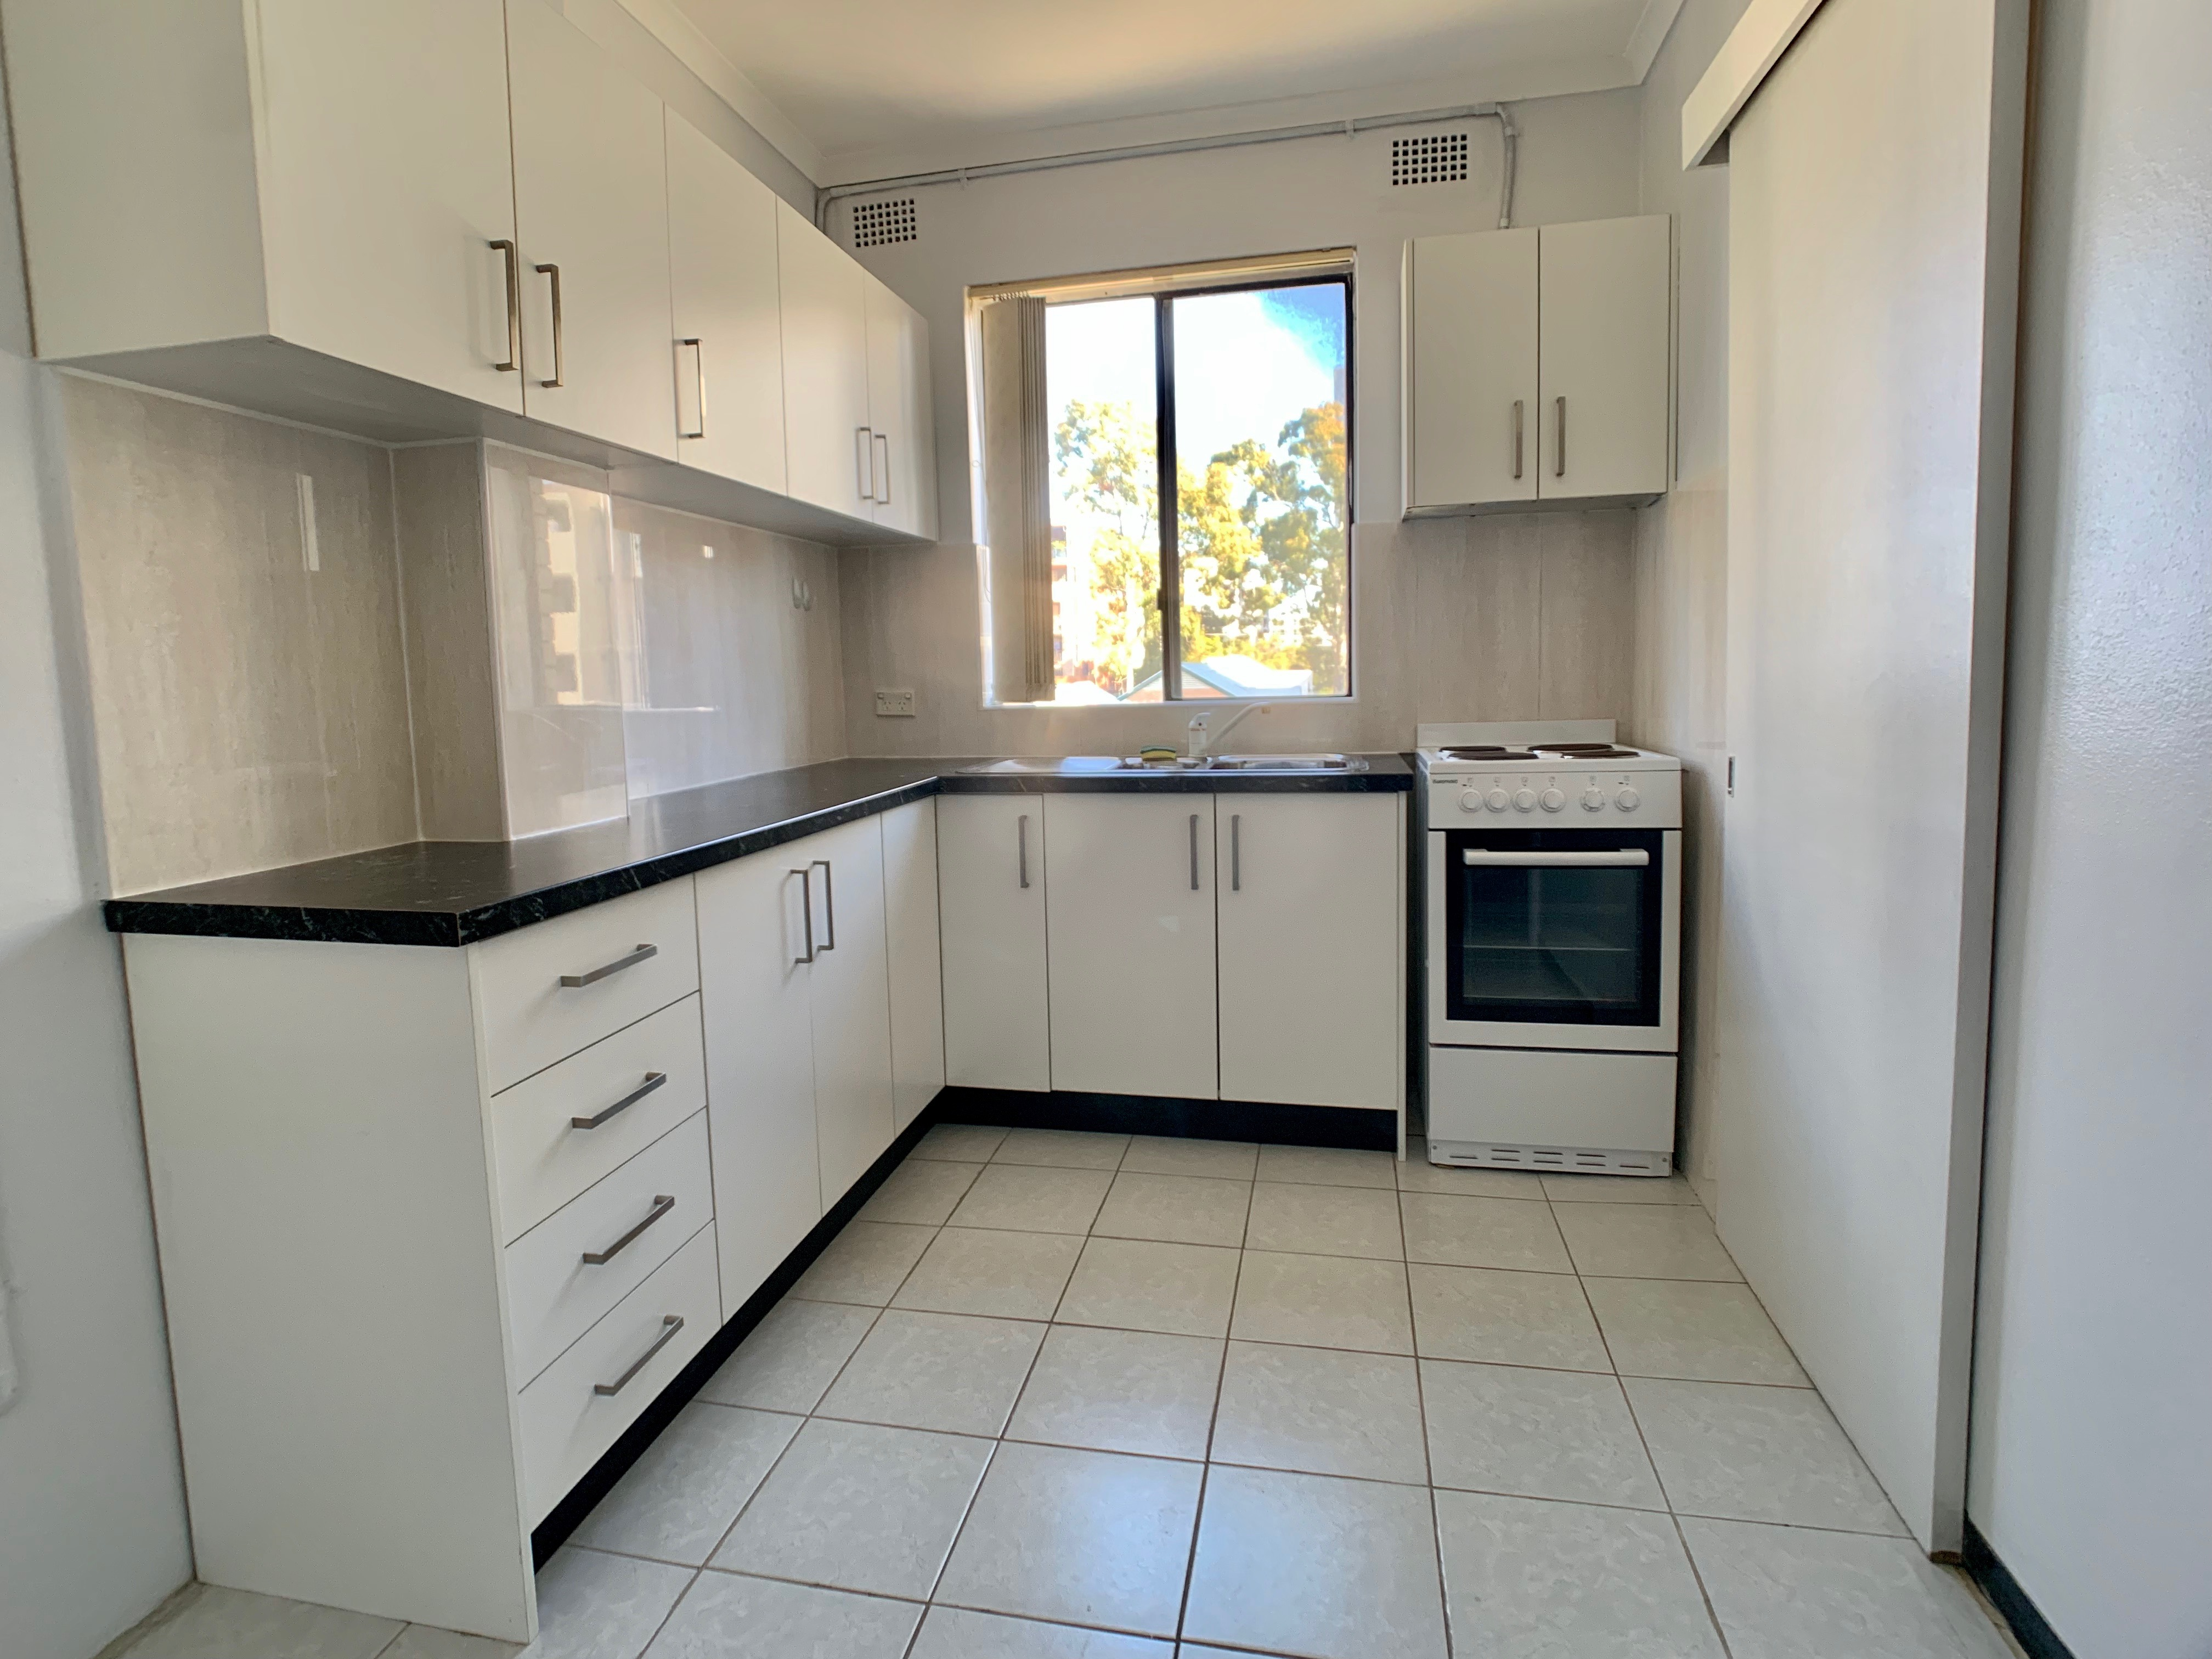 8/8 Goulburm Street - Kitchen